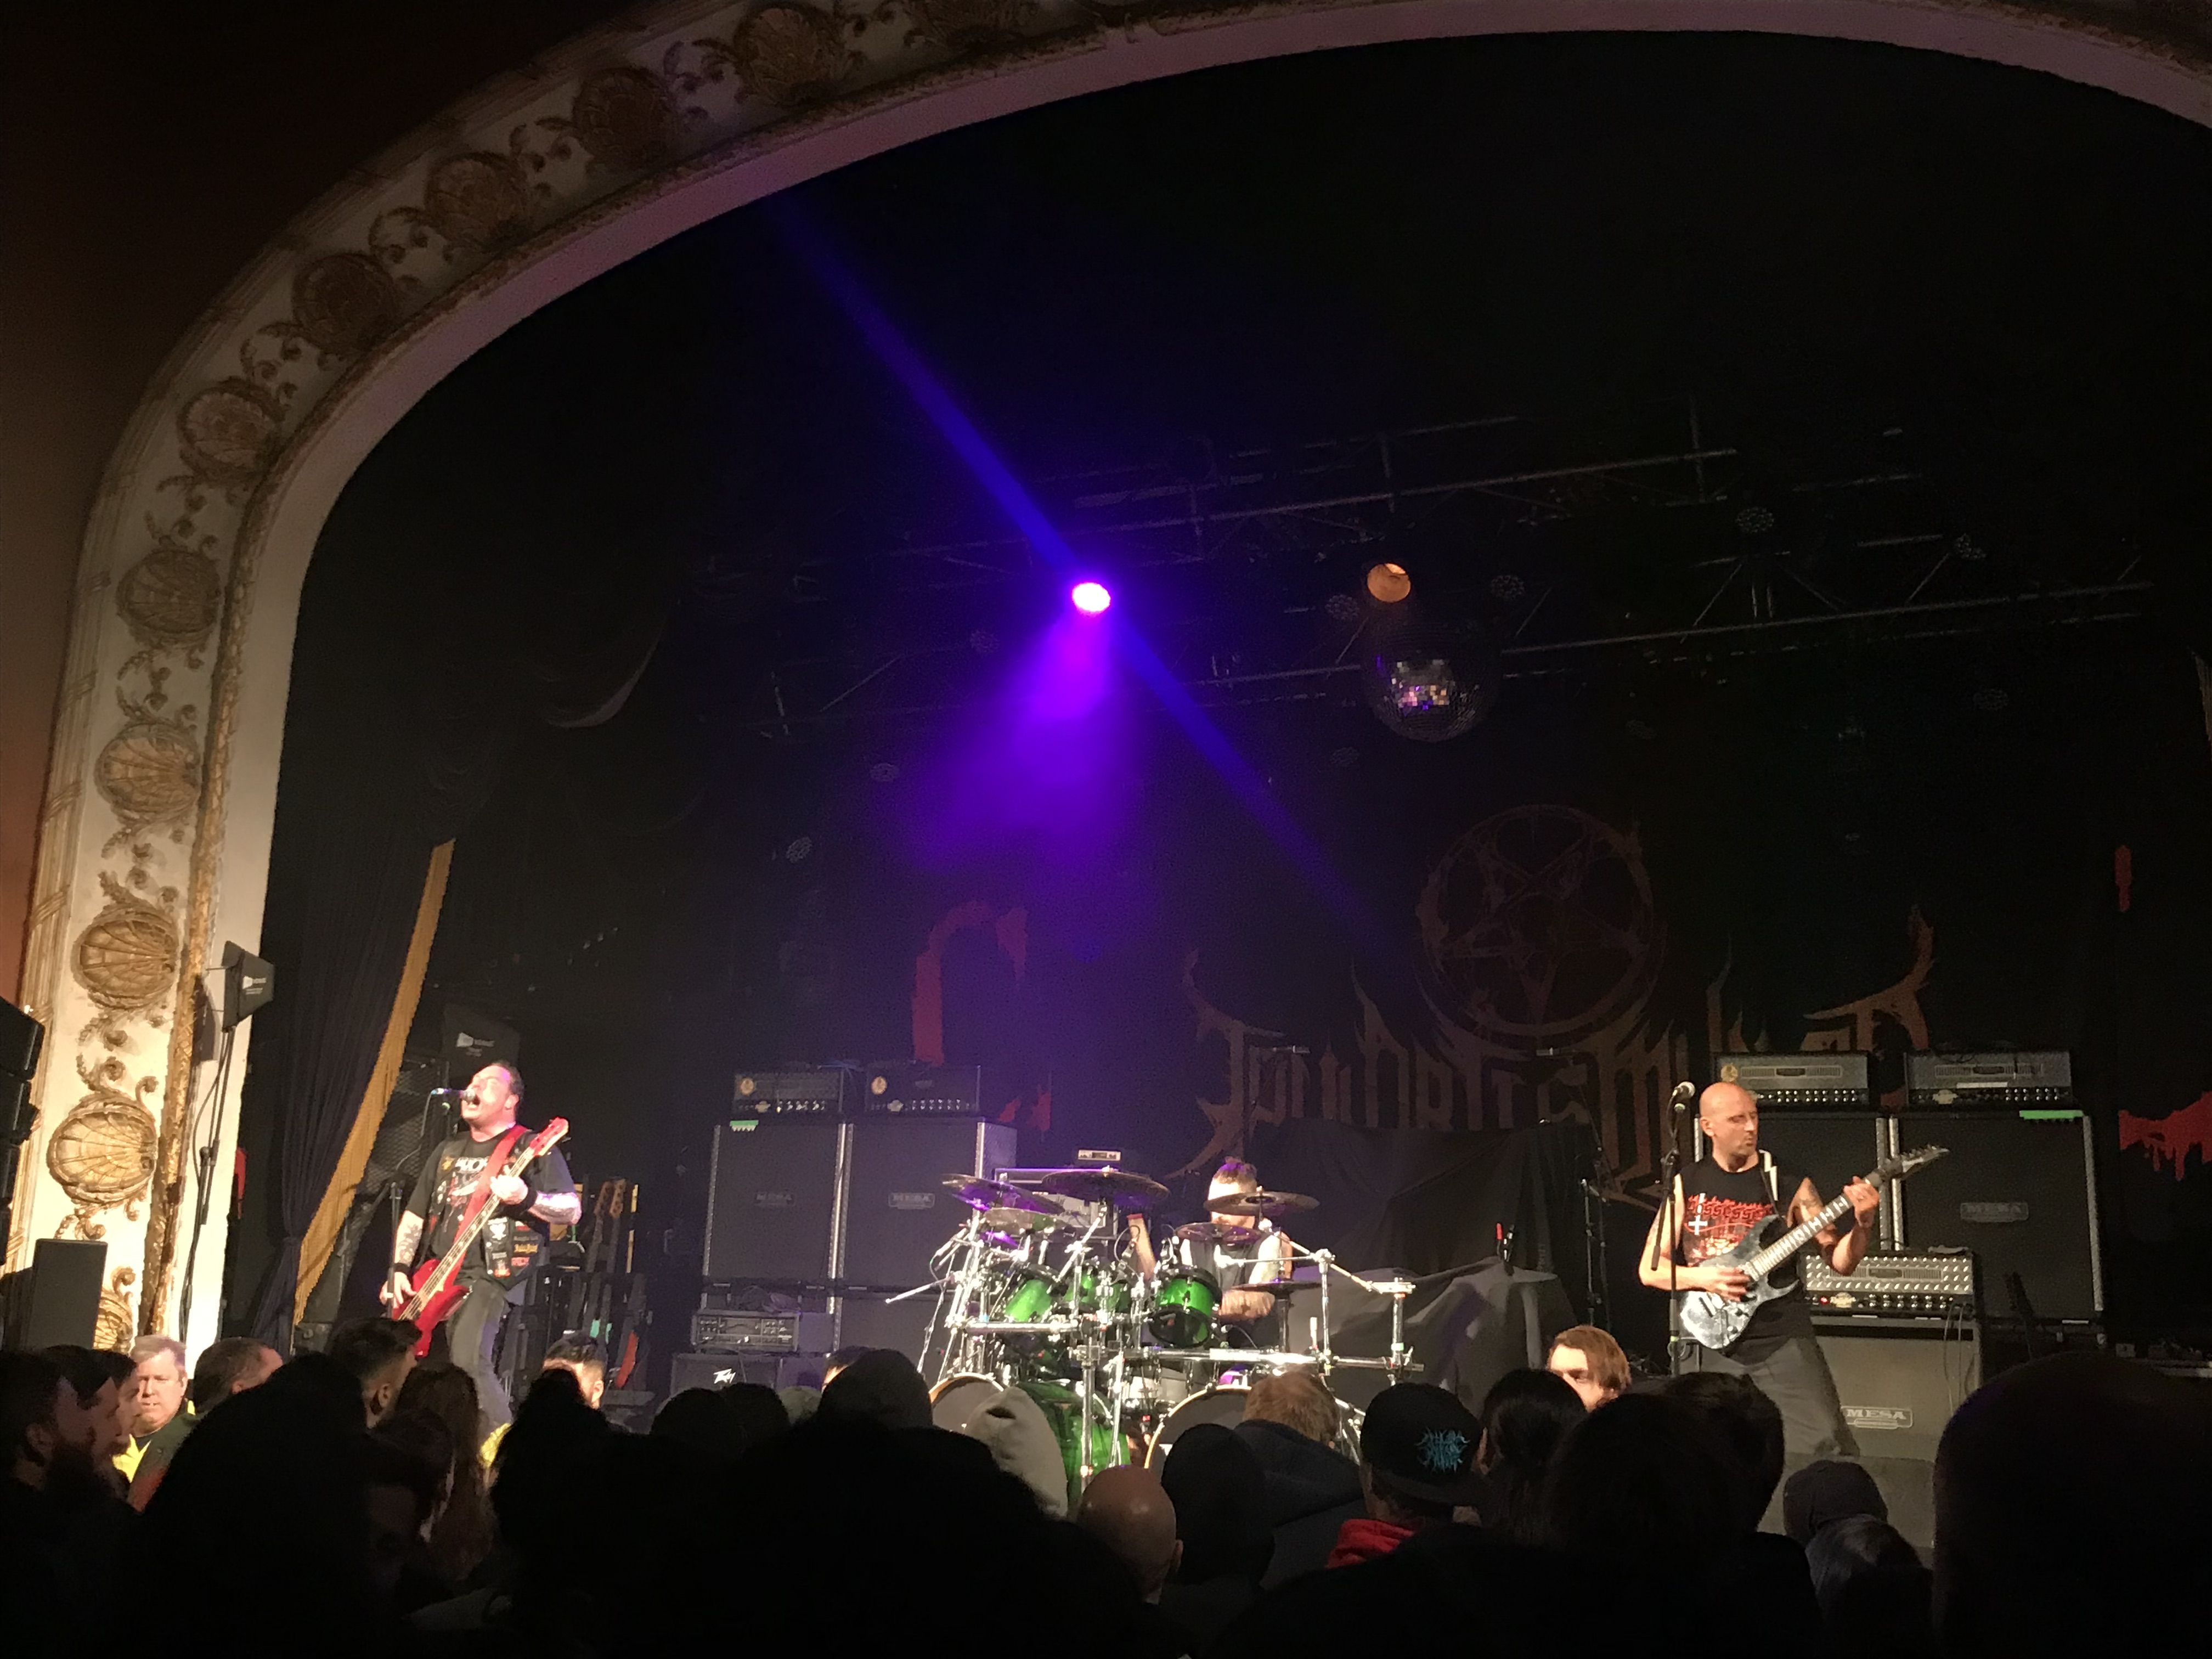 Concert Review Cannibal Corpse The Opera House Toronto On 11